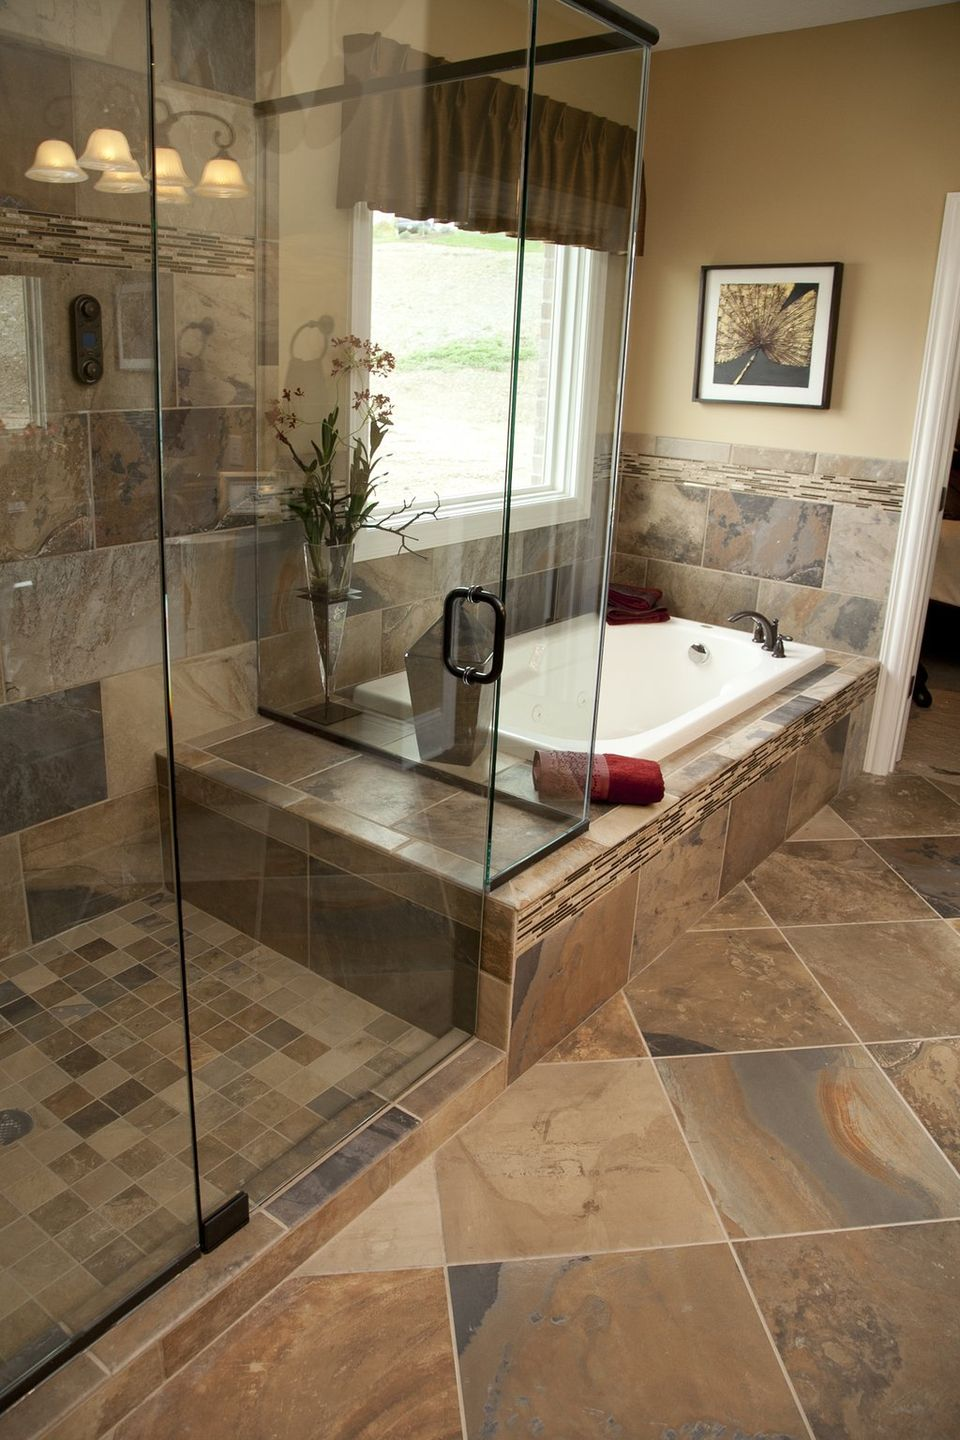 Tile Designs For Bathroom Ideas ~ Stunning pictures and ideas of natural stone bathroom